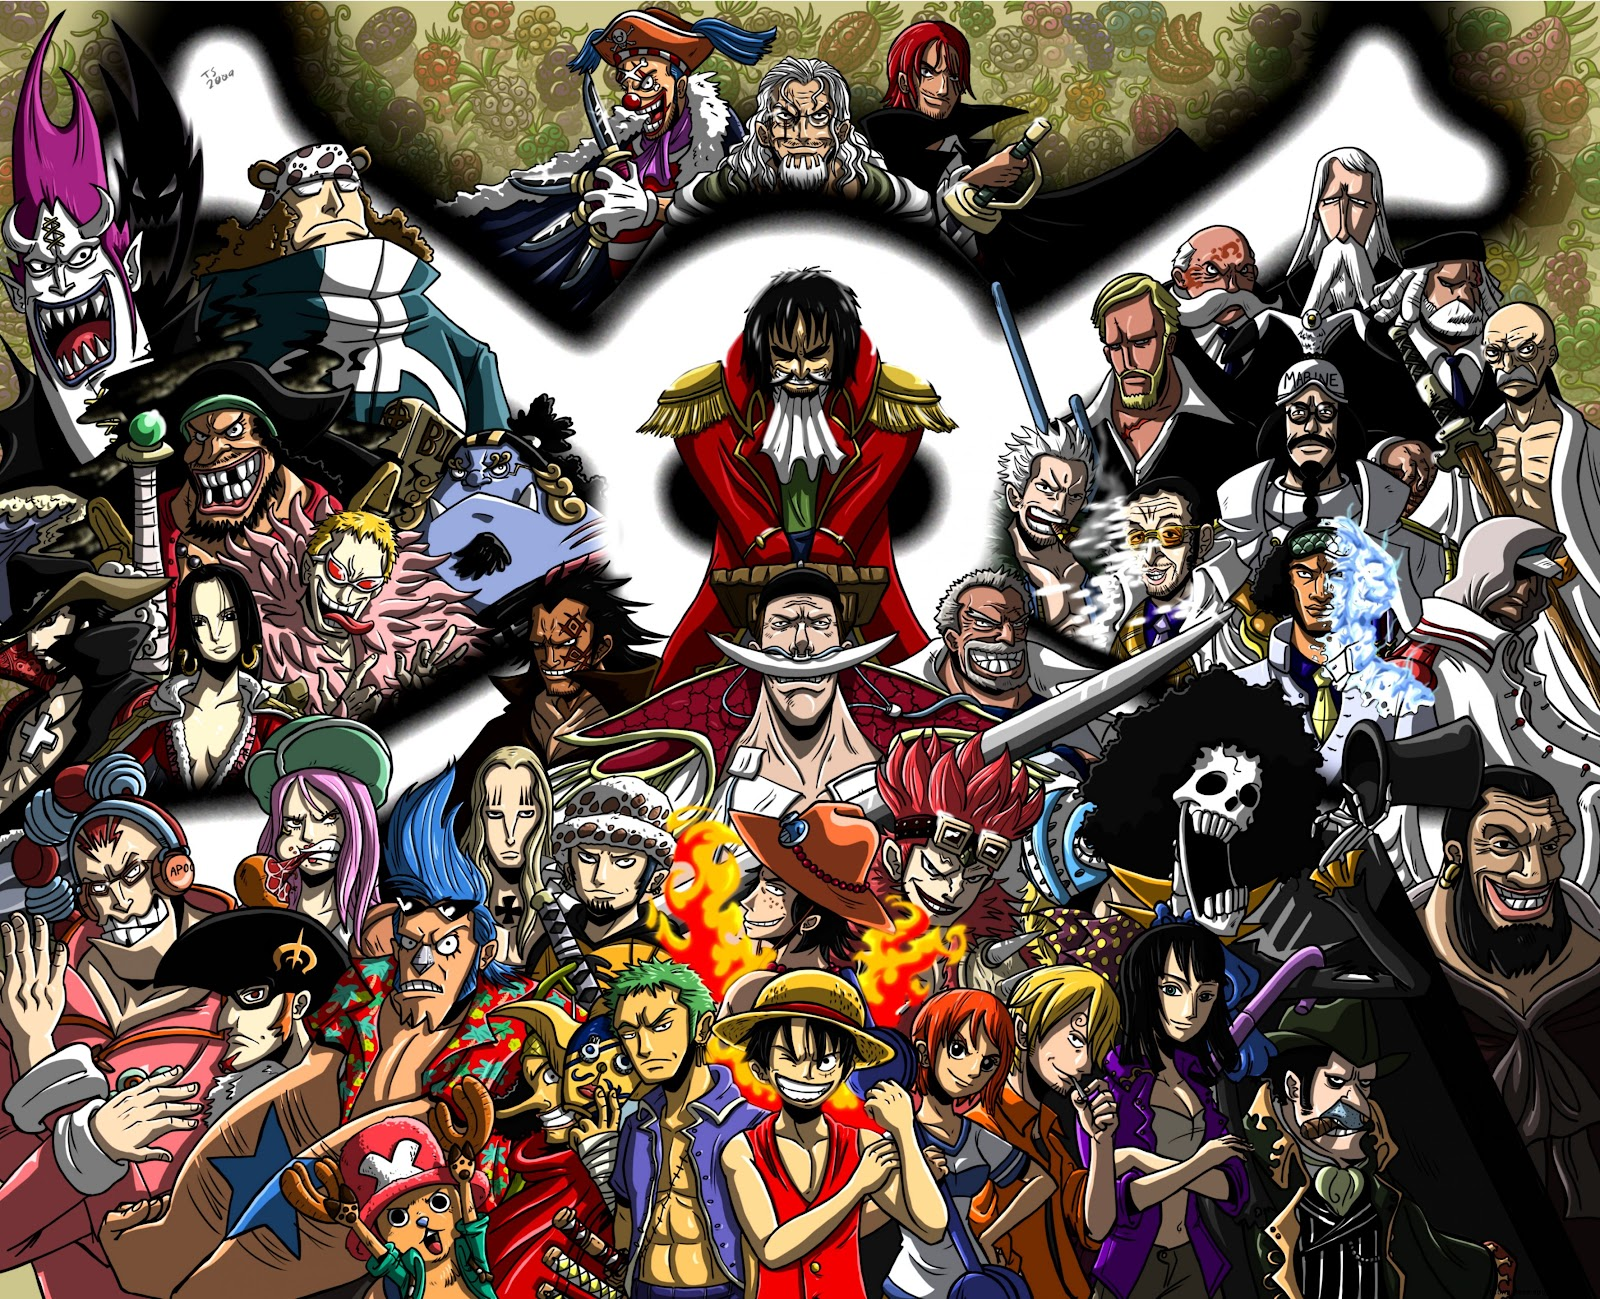 682 One Piece HD Wallpapers  Backgrounds   Wallpaper Abyss